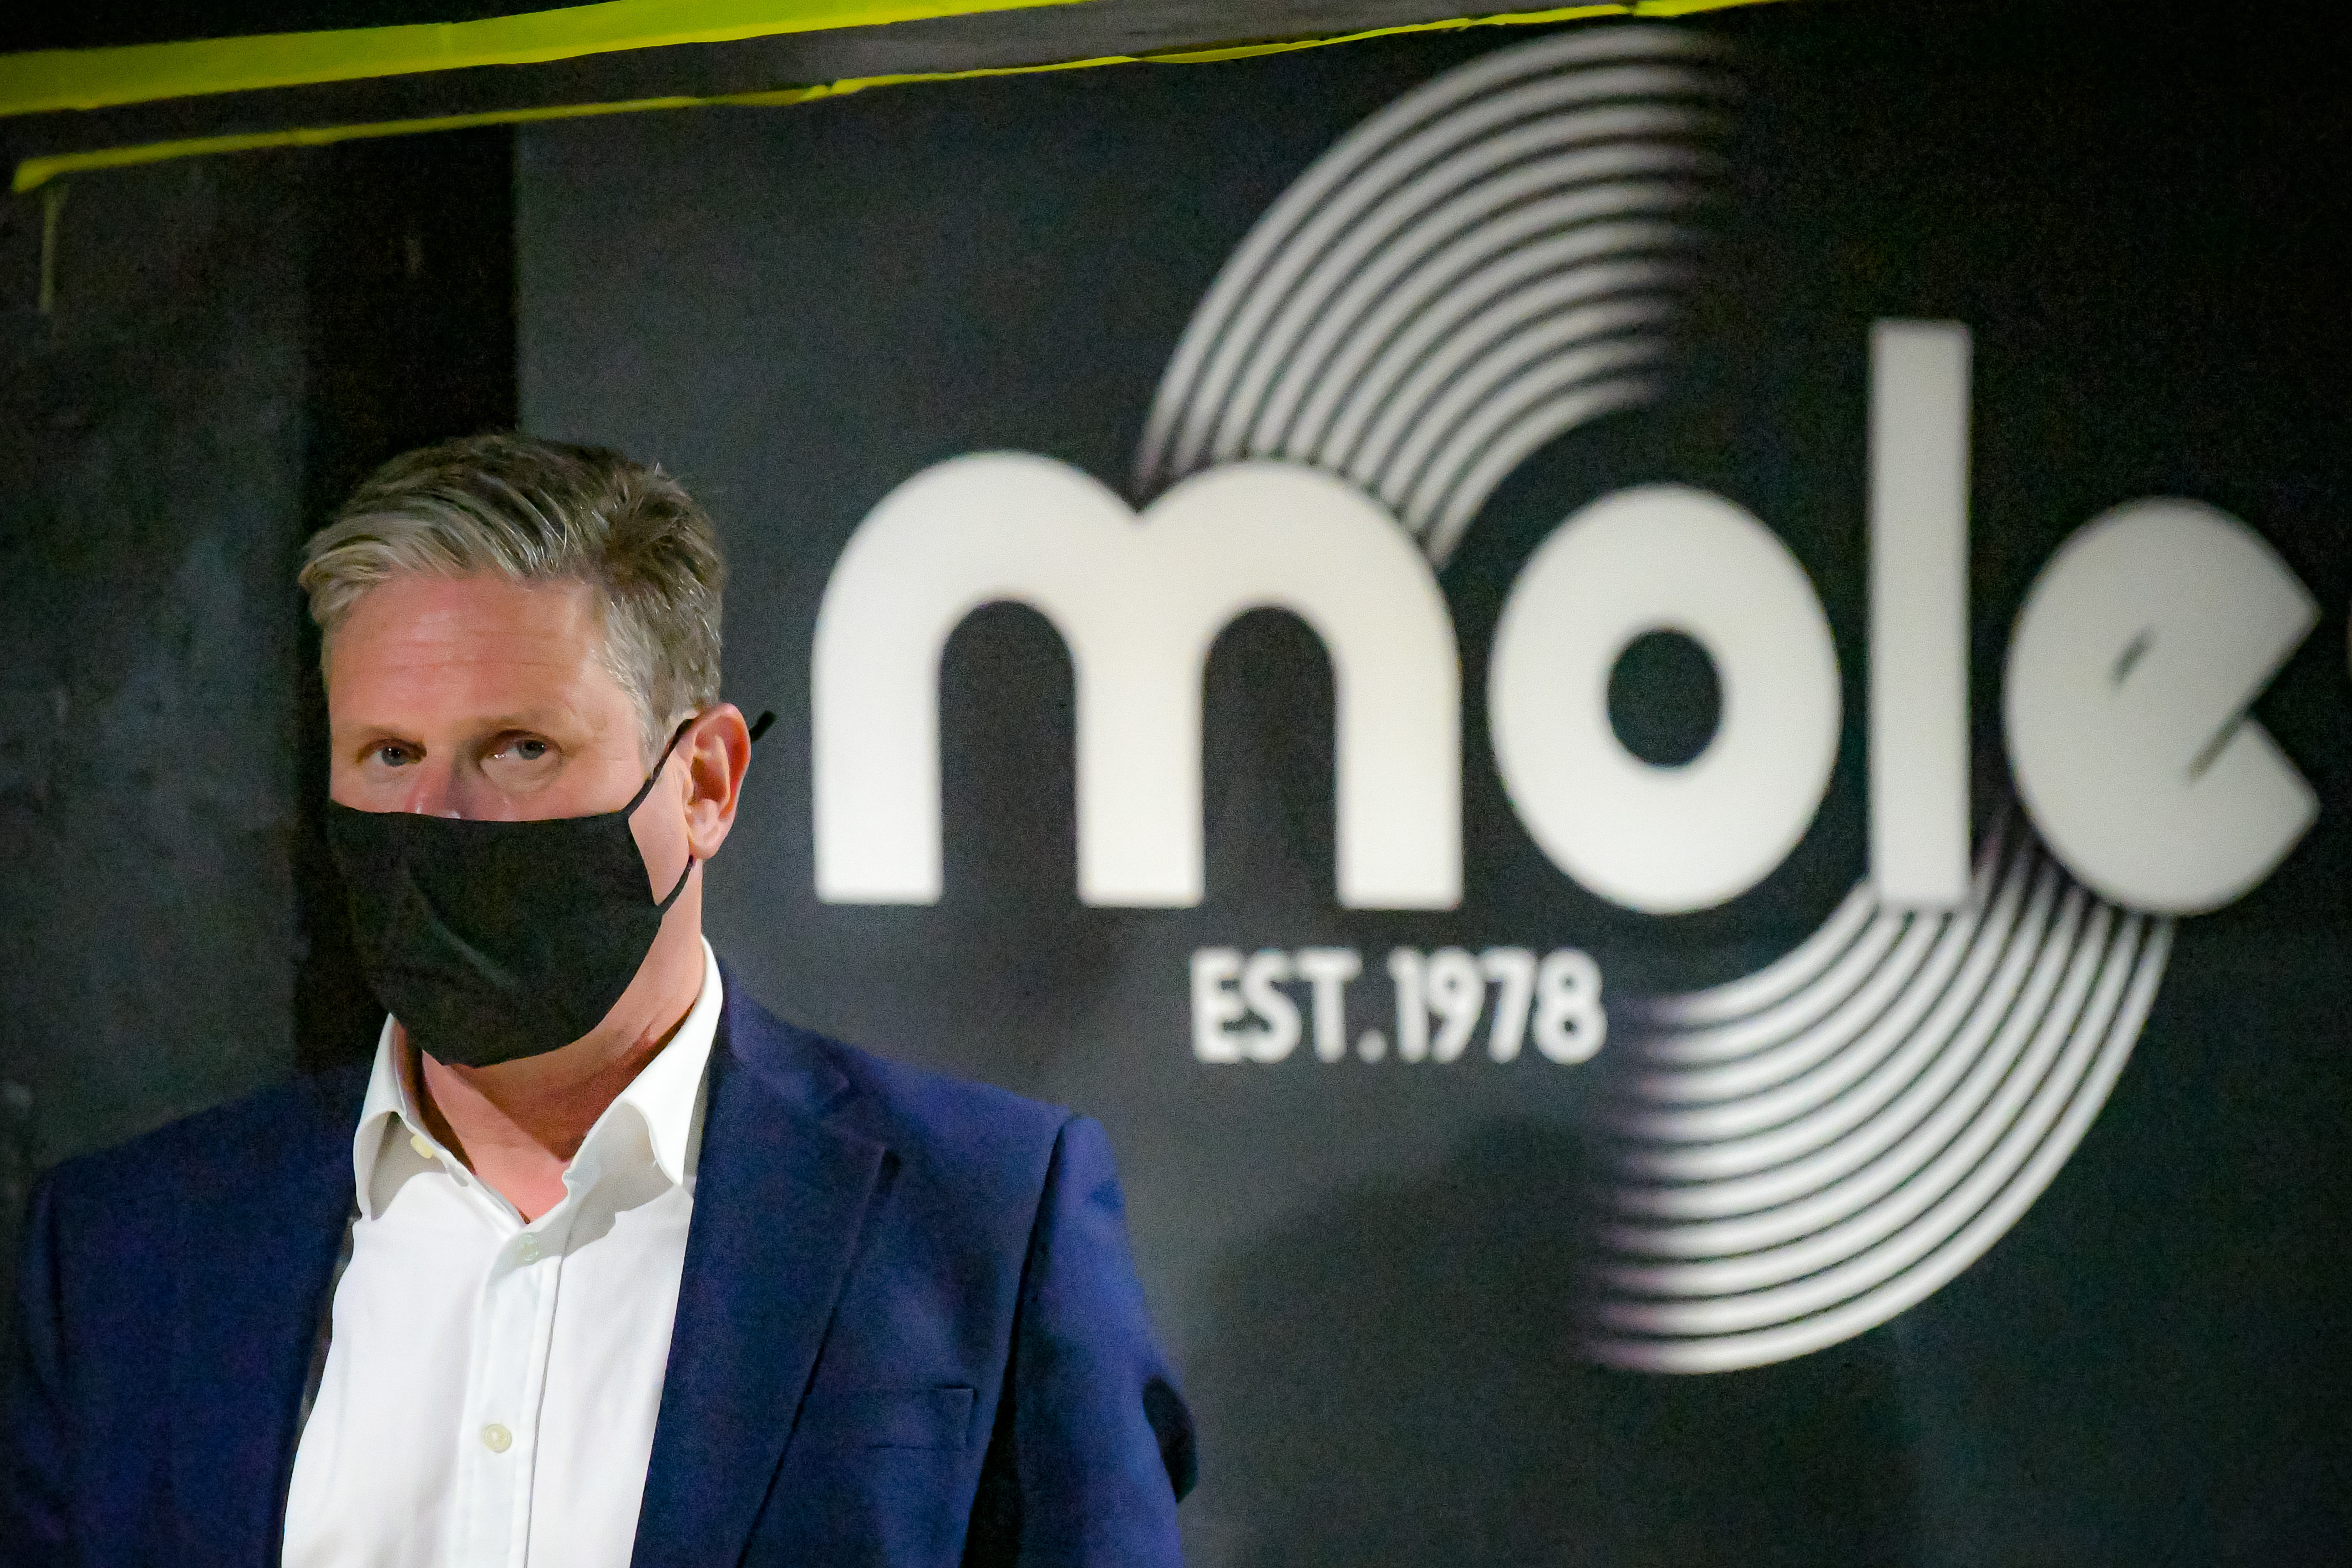 <p>Labour leader Sir Keir Starmer, on stage at Moles bar during a visit to Bath, to support West of England metro mayoral candidate Dan Norris and mark Labour's launch of an independent Commission to rebuild Britain's high streets. Picture date: Monday April 19, 2021.</p>